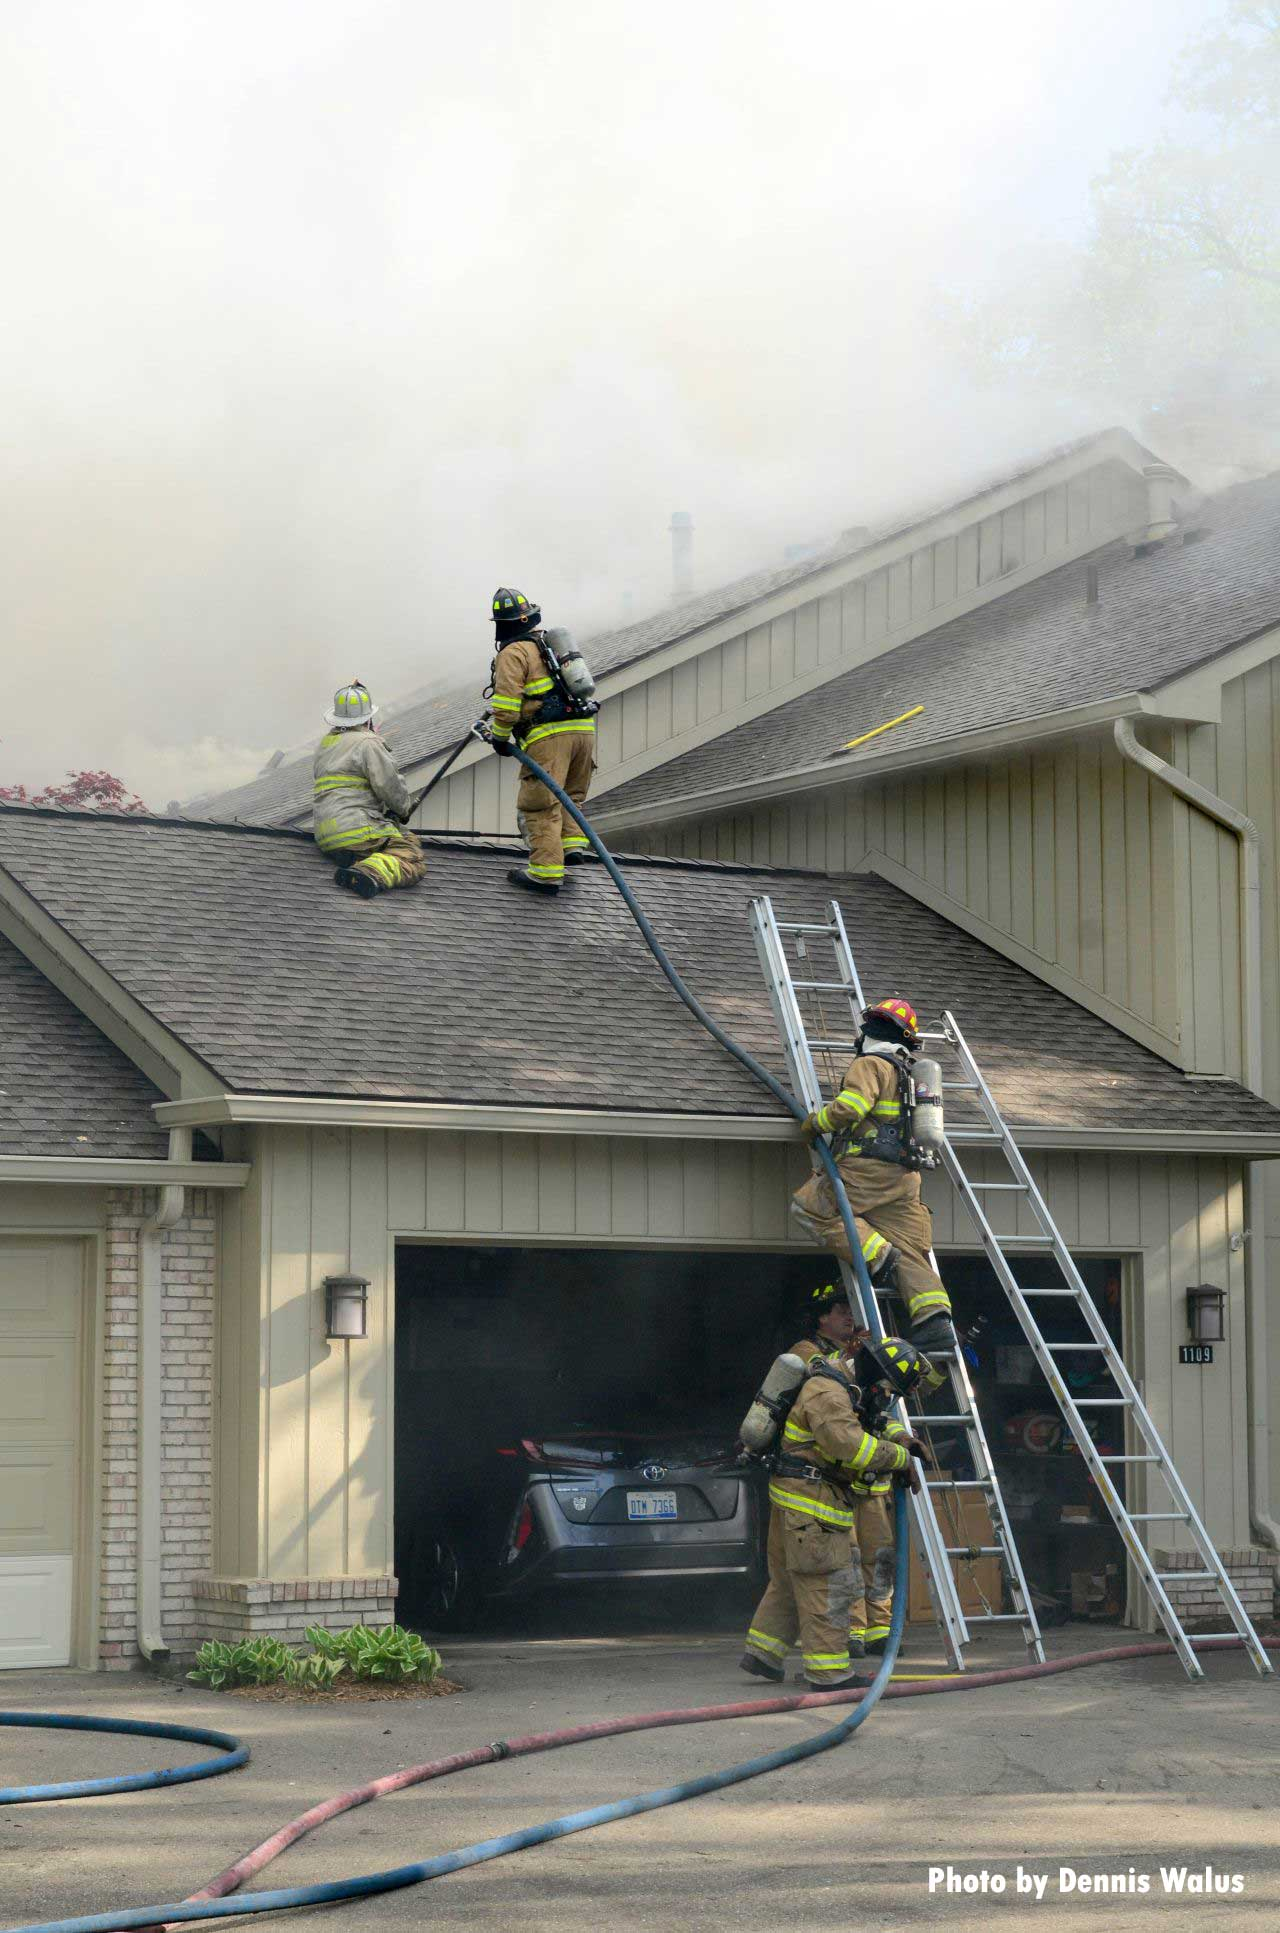 Firefighters stretch a line onto the roof of the building